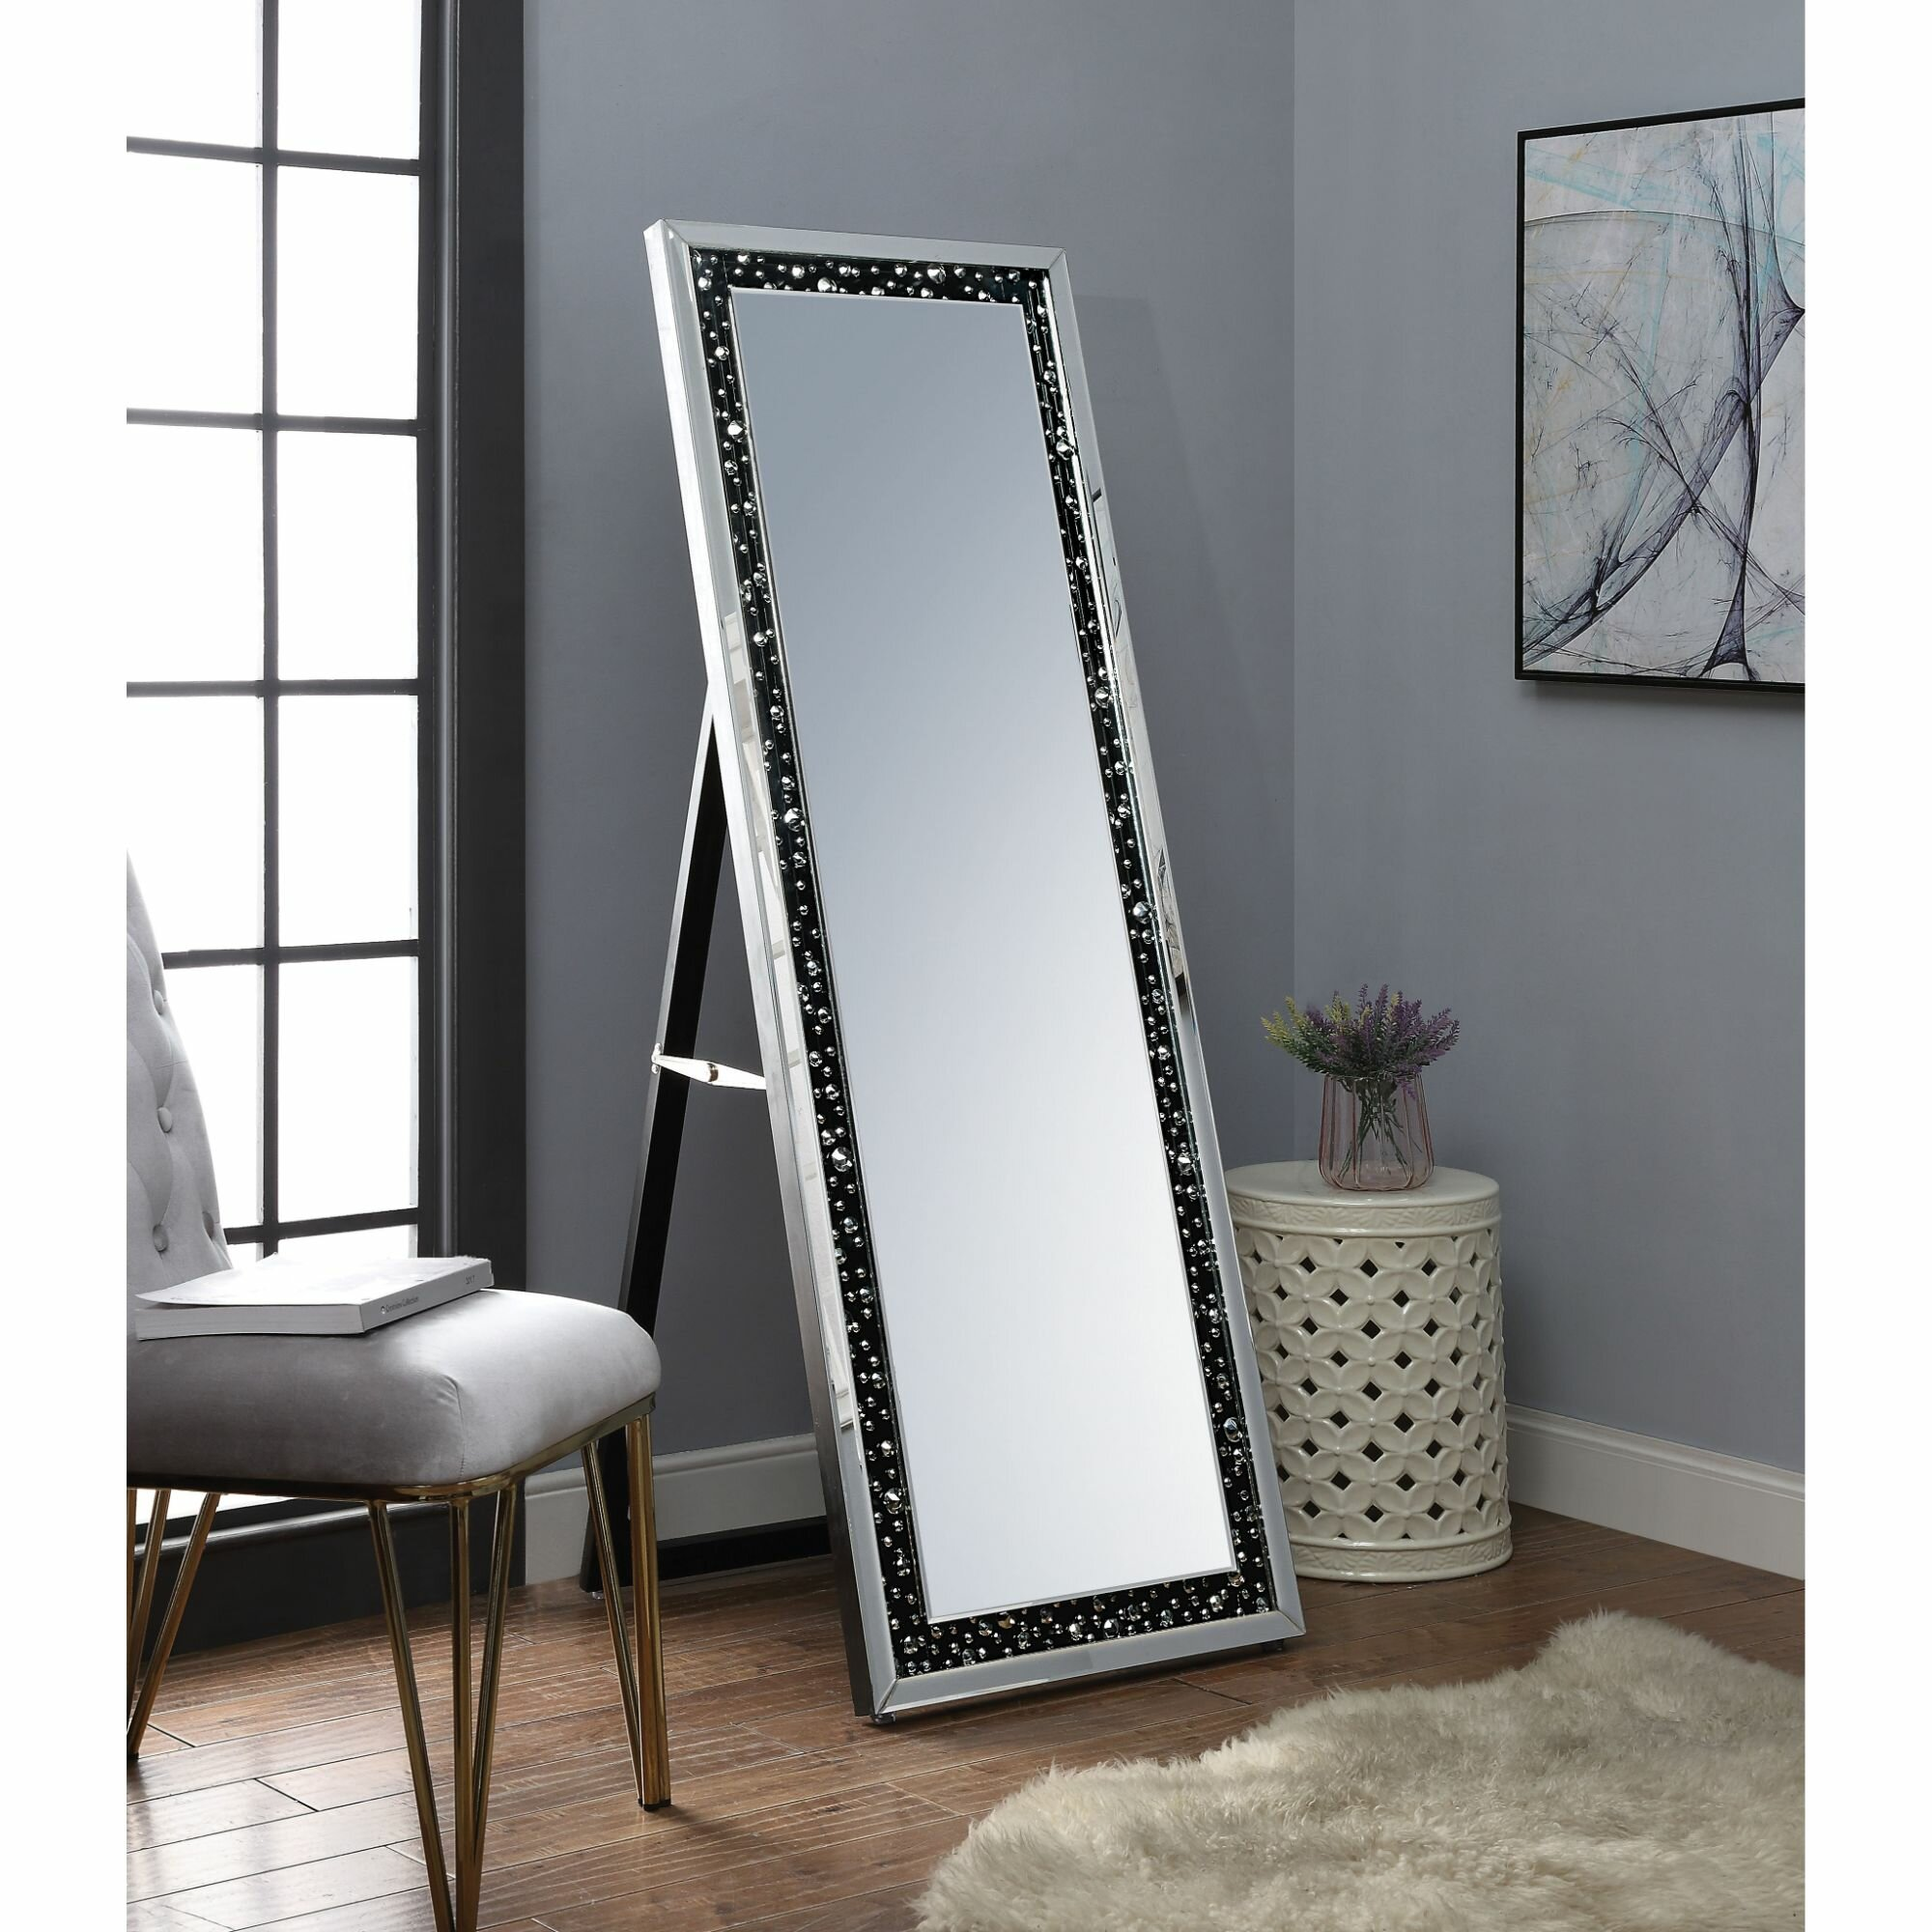 Orren Ellis Mash Faux Crystal Inlaid Wooden Beveled Floor Full Length Mirror Wayfair